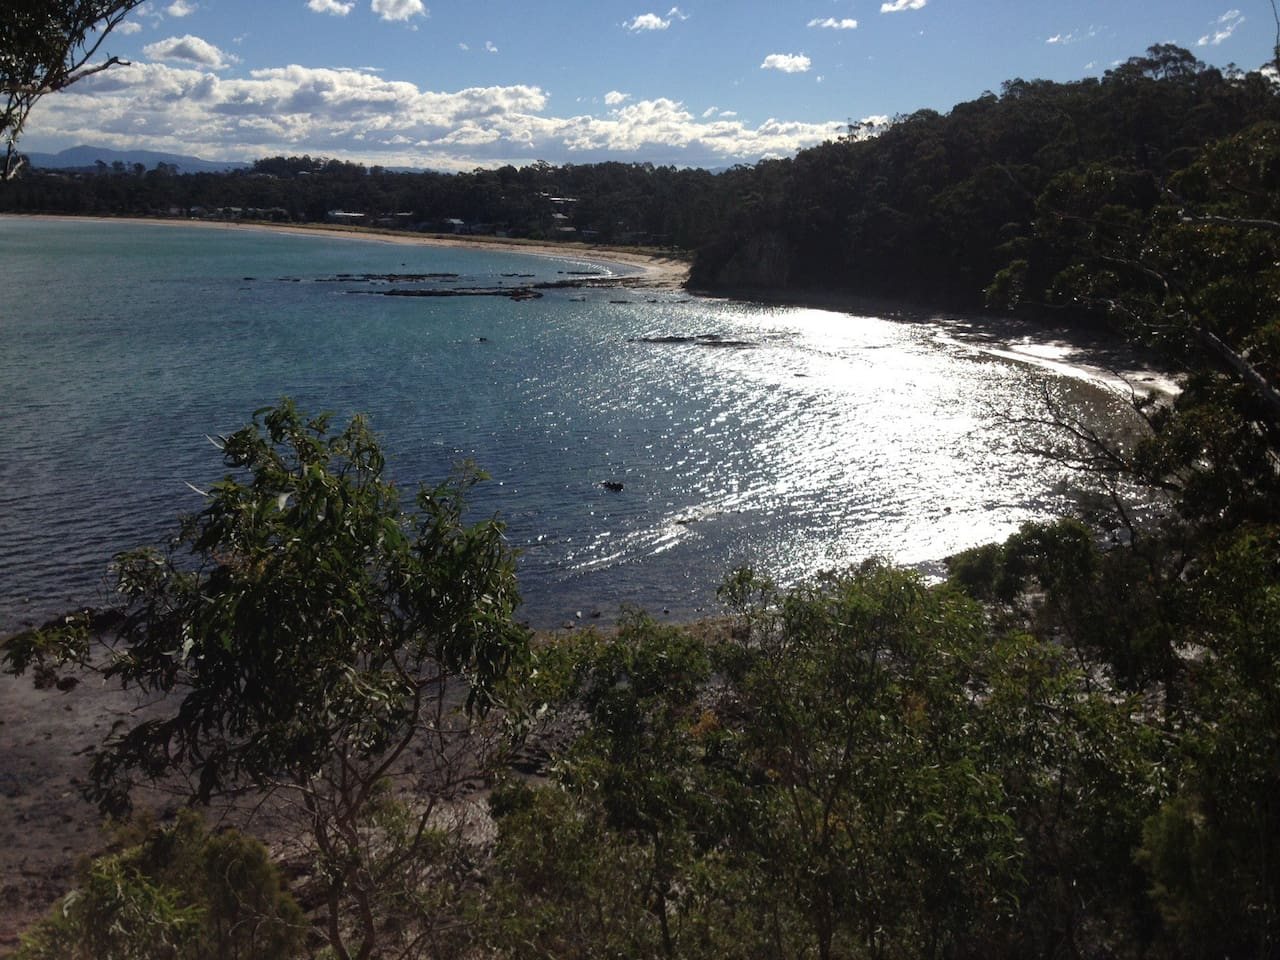 A fabulous view of the bay at any time of the day or year from the headland adjacent to the Moonrise Studio Apartment